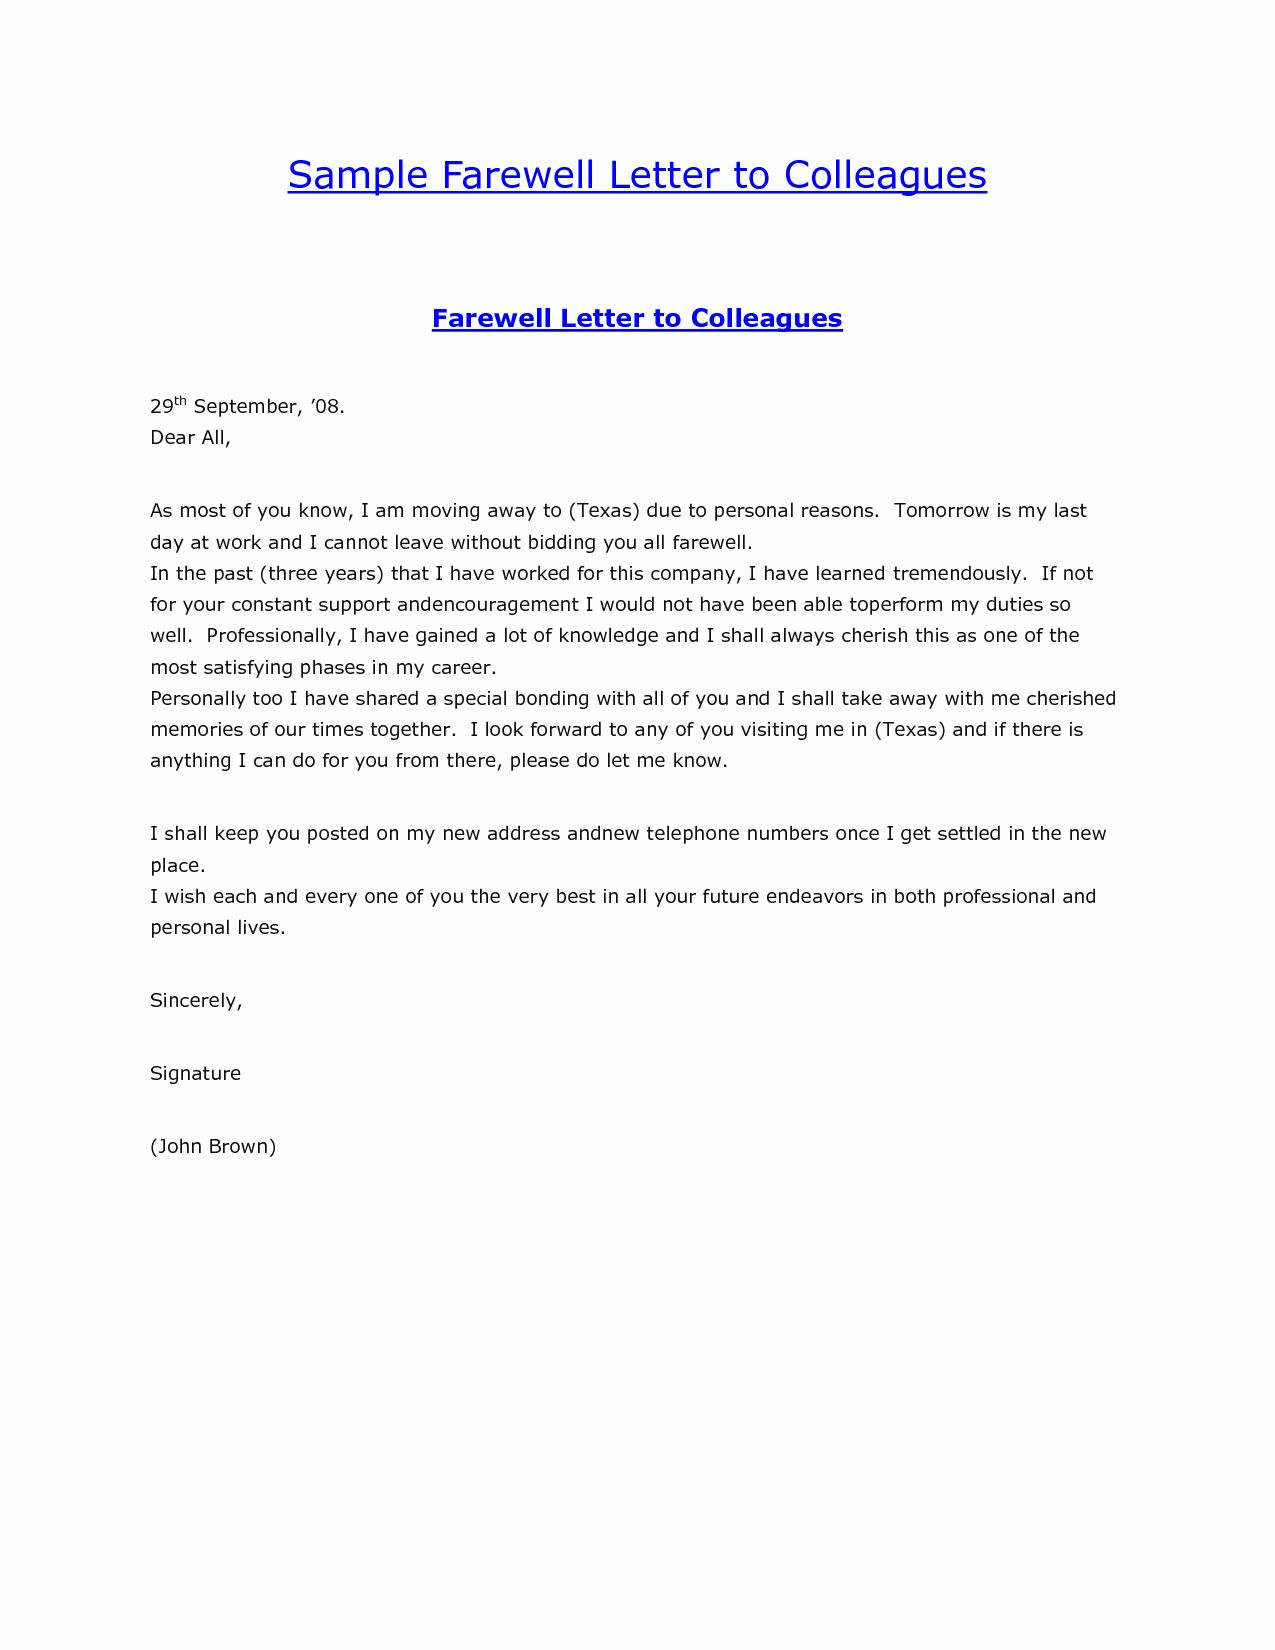 Farewell Card Template in 2020 | Farewell email to coworkers. Farewell letter to colleagues. Goodbye quotes for coworkers